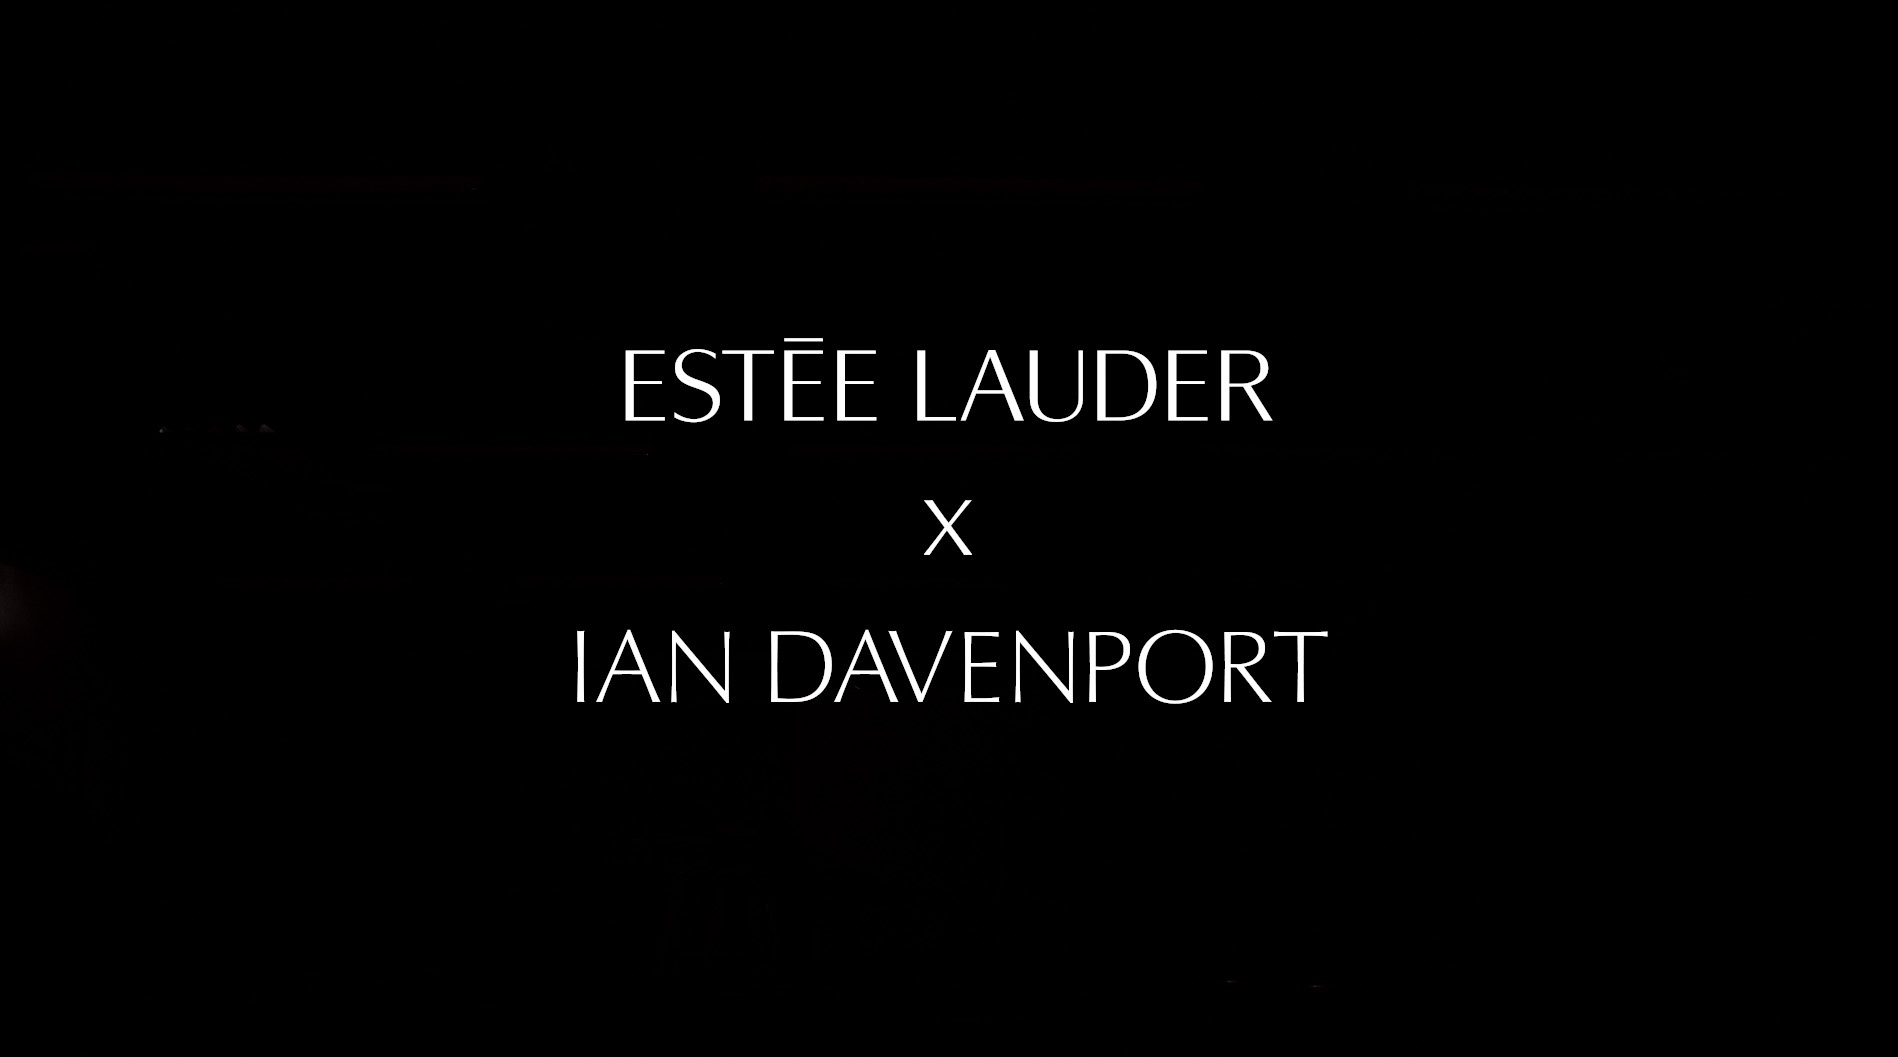 Image Media for Estee Lauder X Ian Davenport